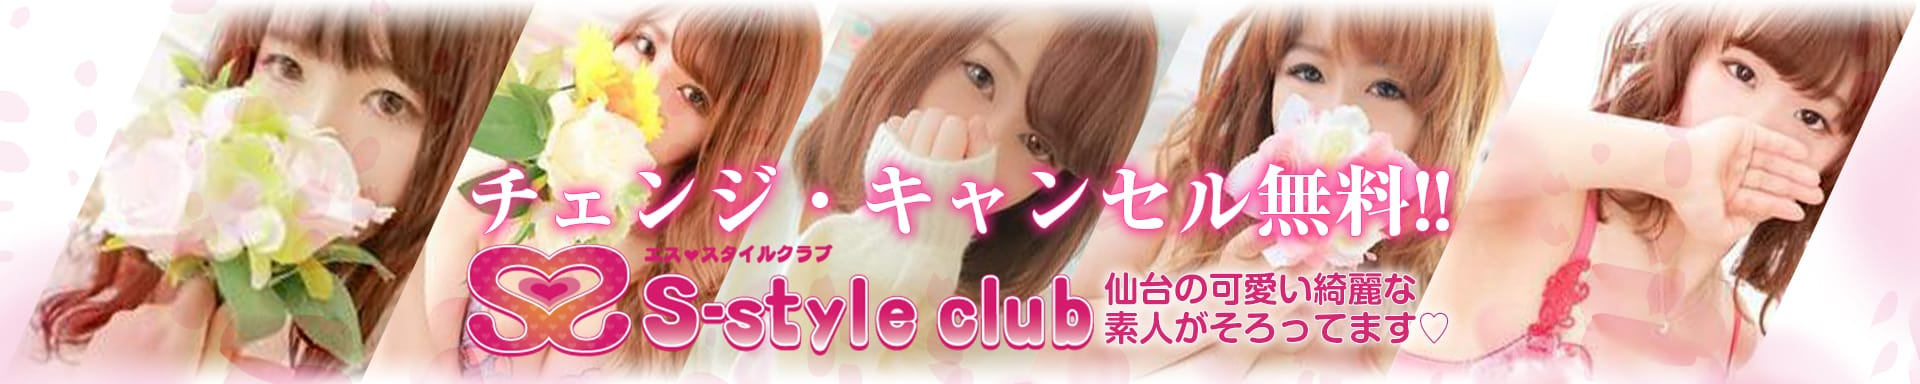 S-style club(エススタイルクラブ) その3